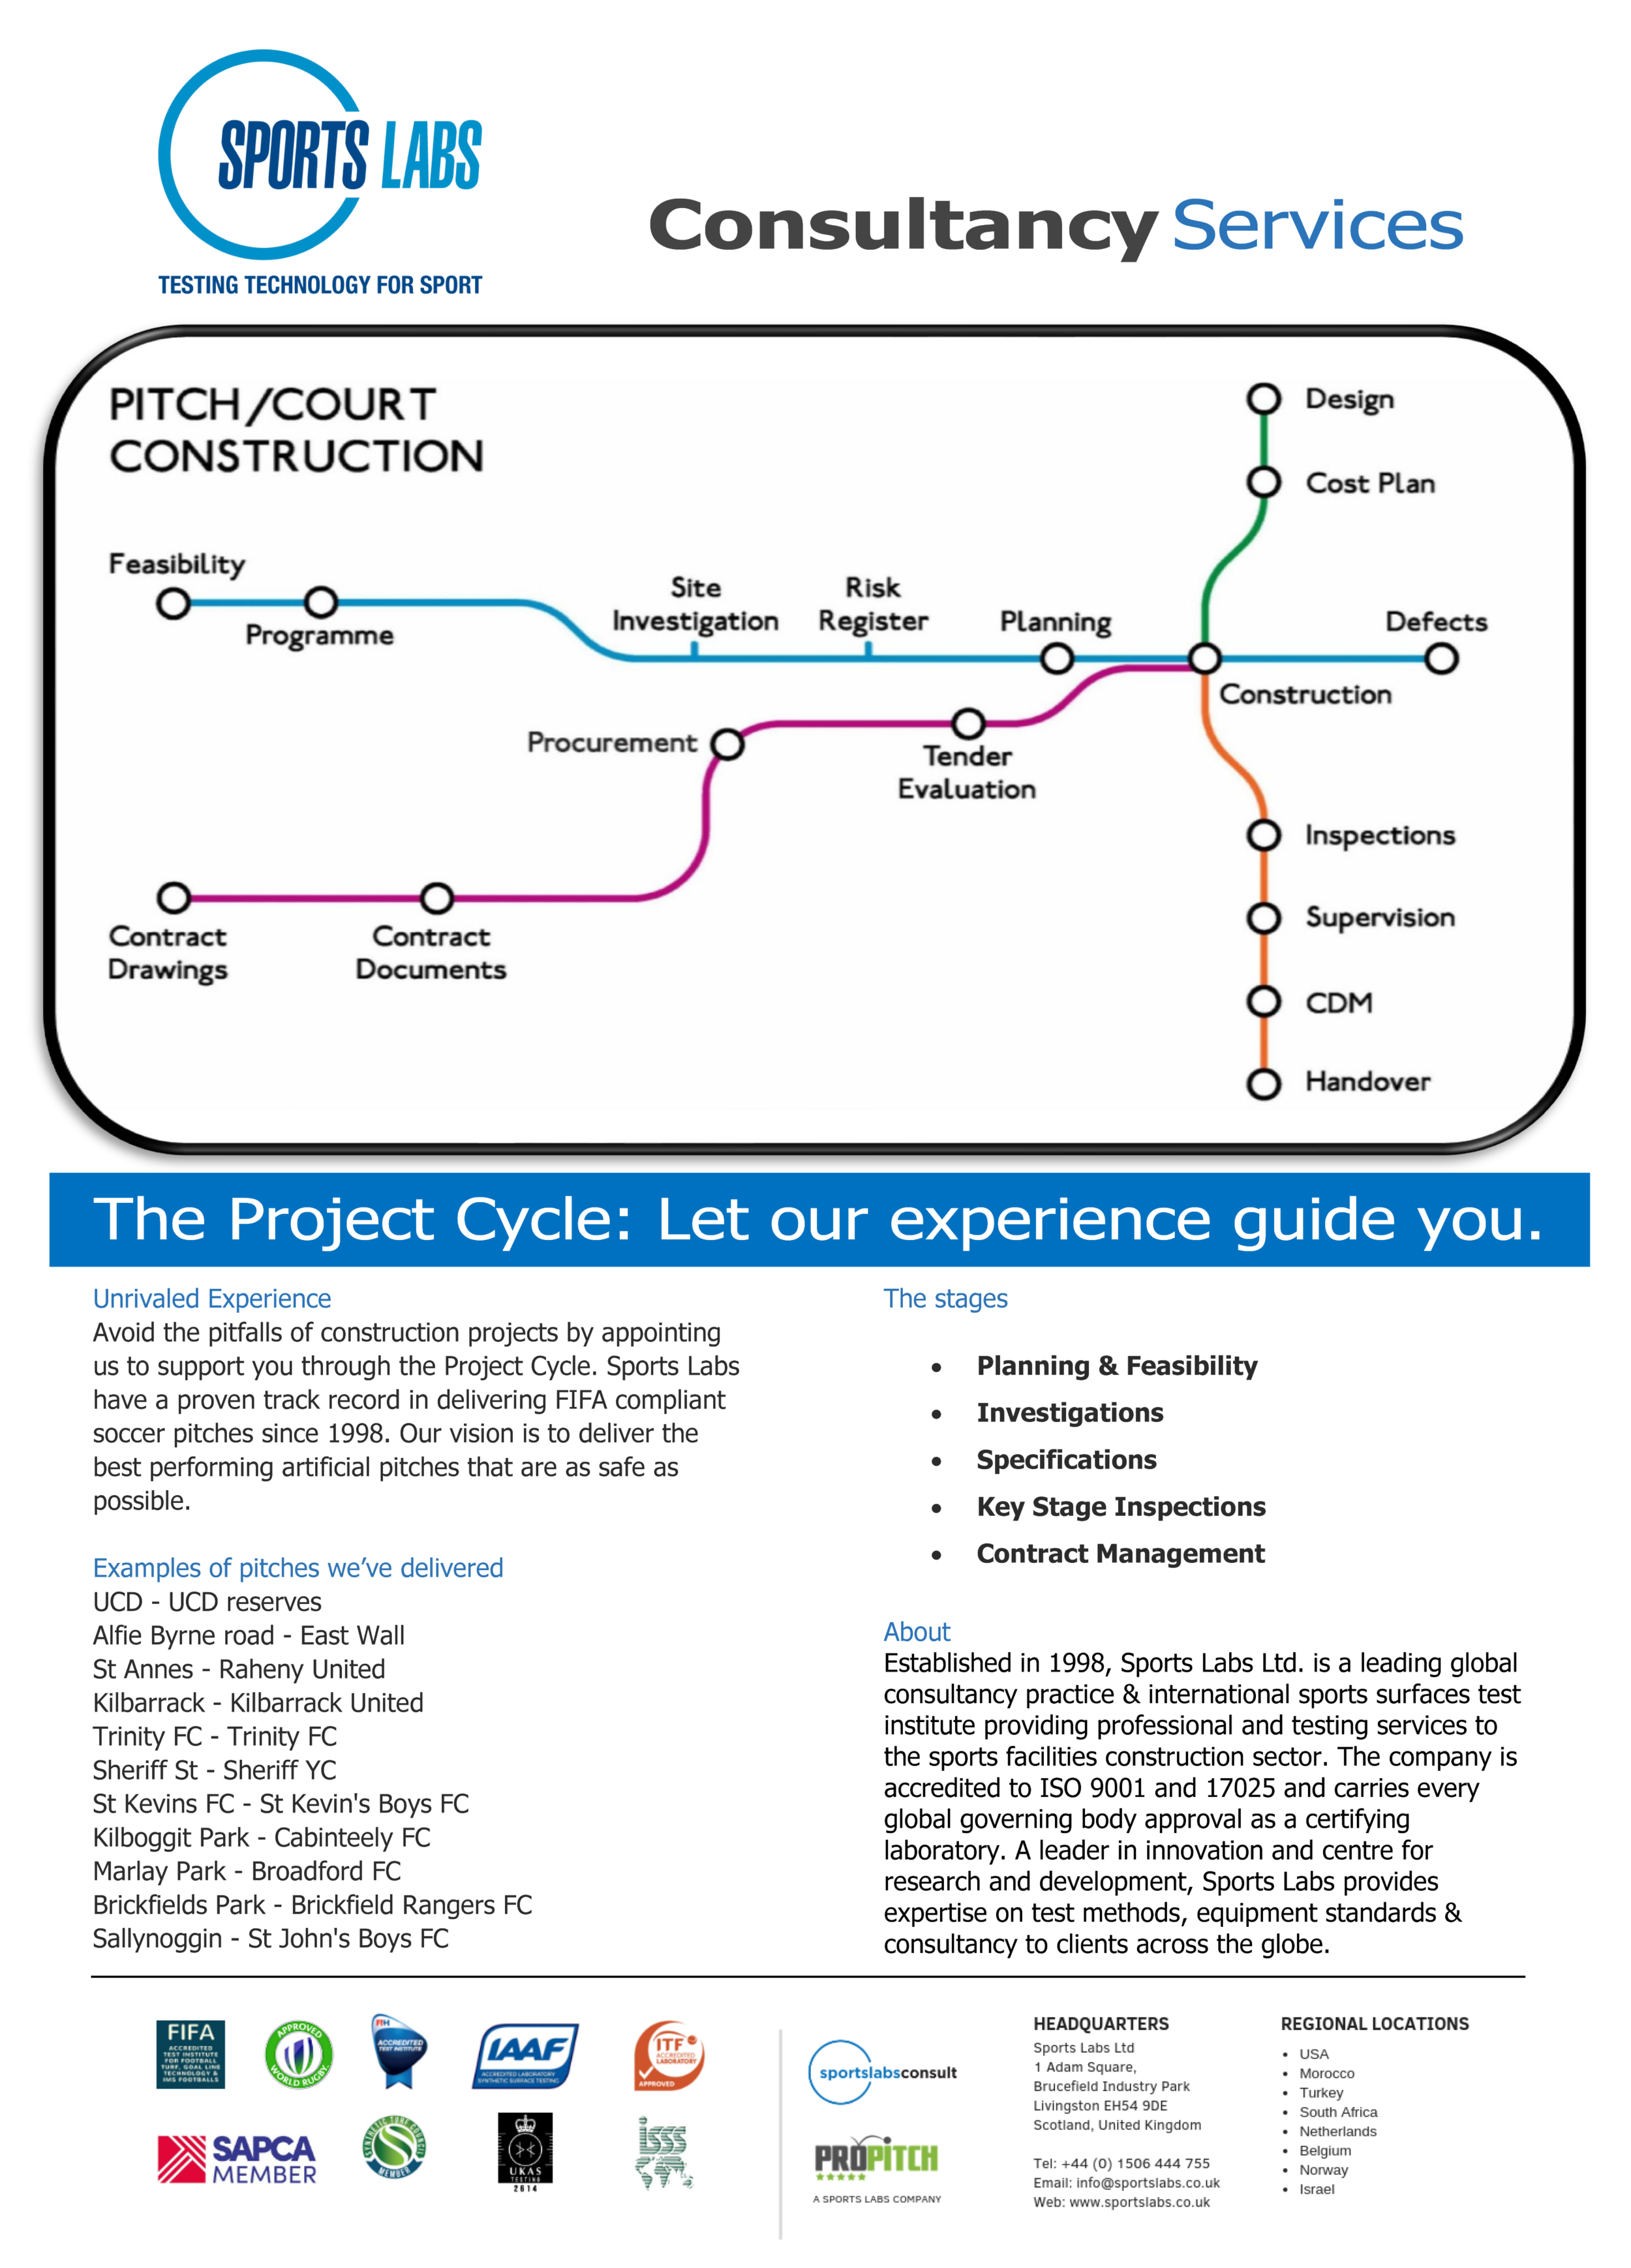 ConsultingProjectCycle.SportsLabs.png